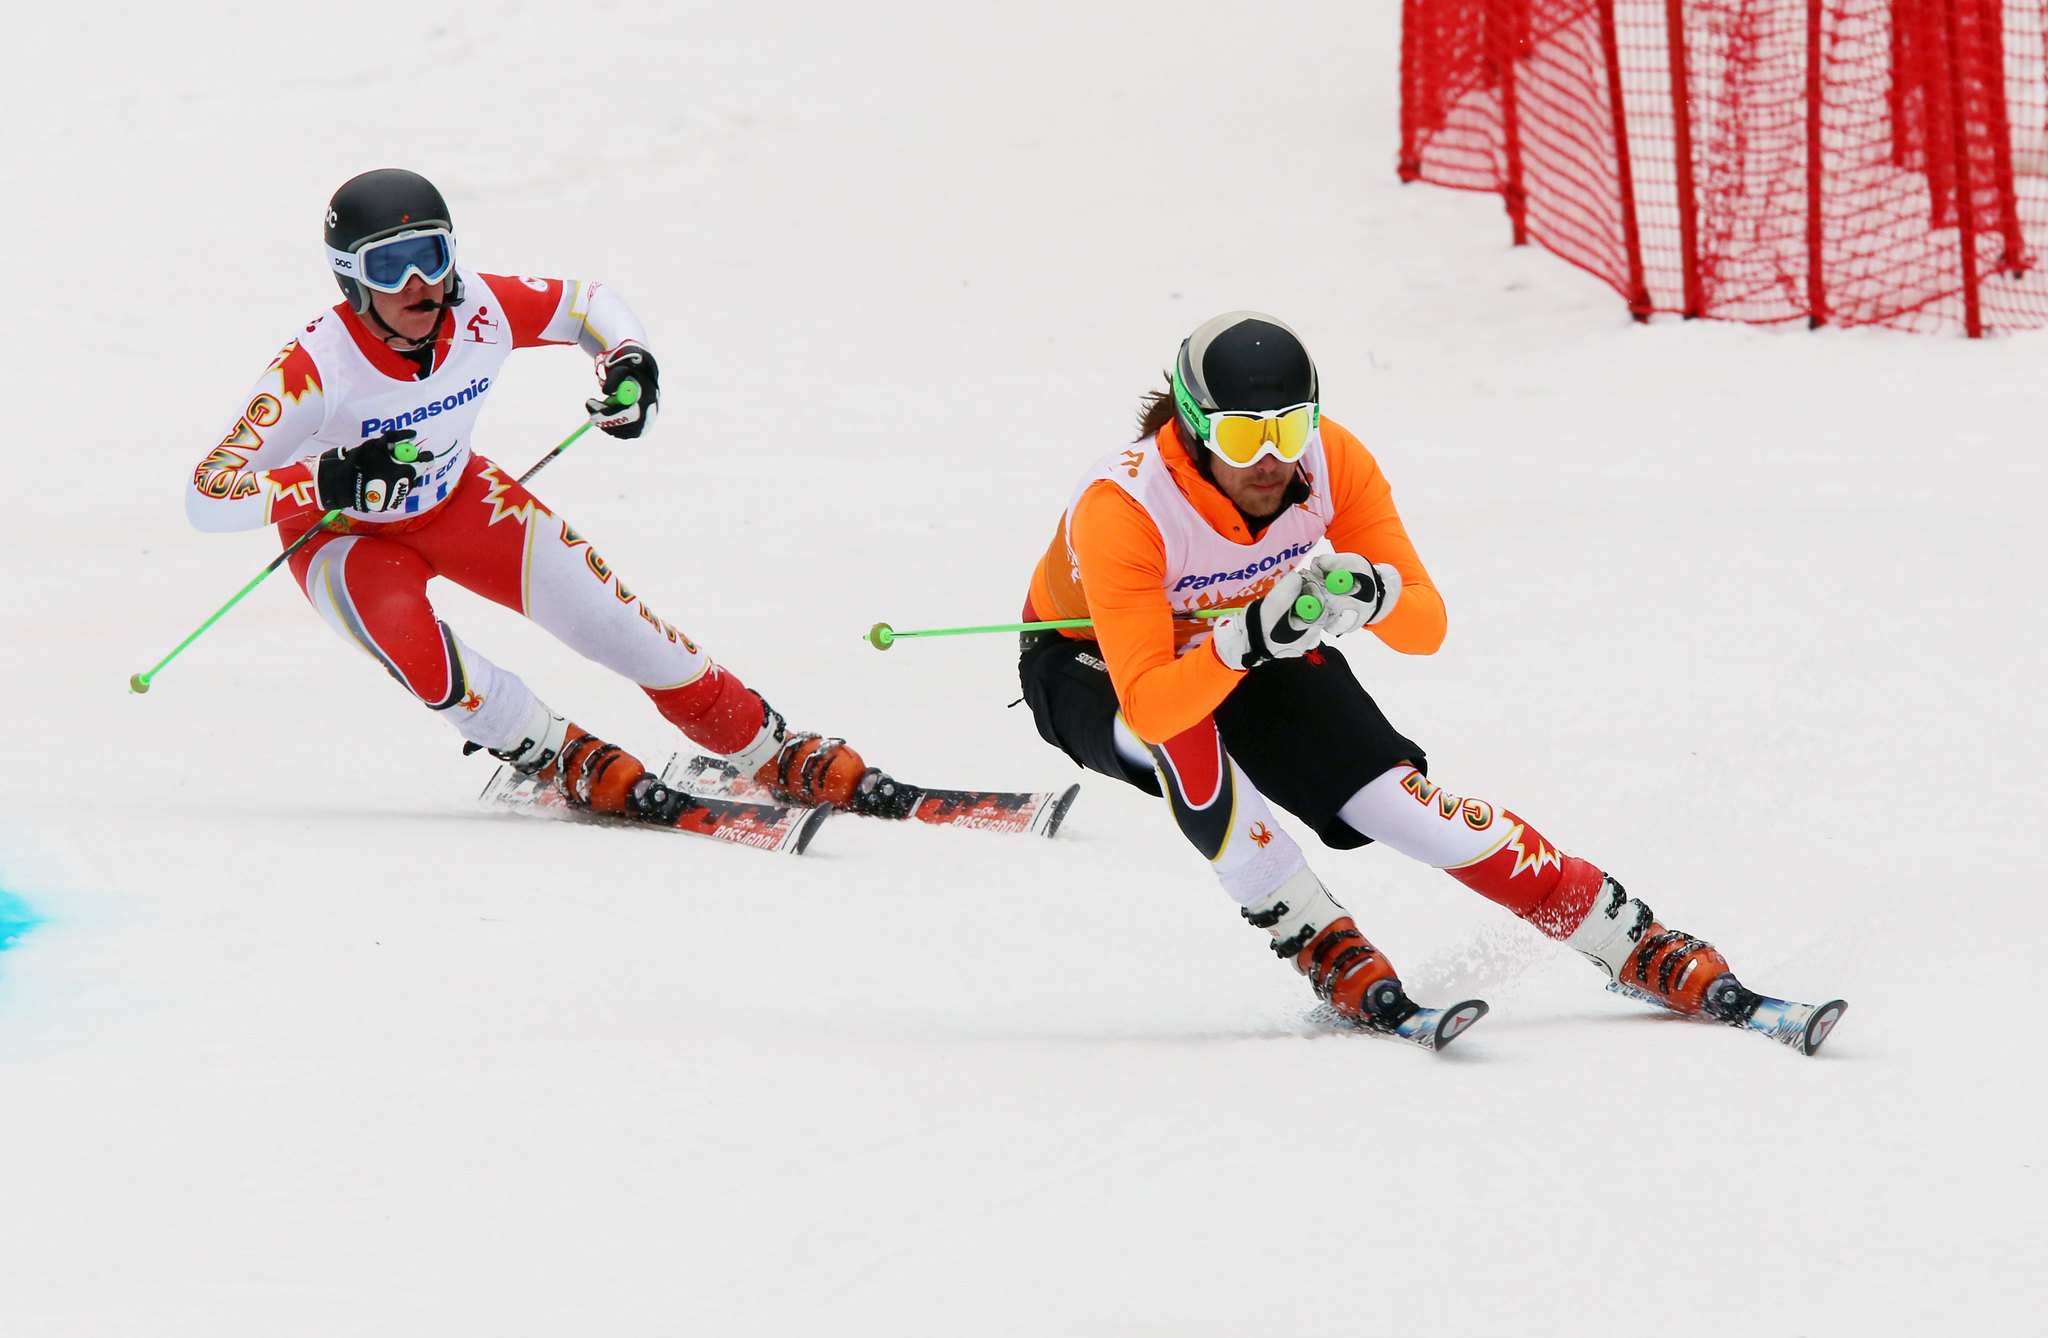 Robin Femy guides Mac Marcoux to the top of the podium during the giant slalom at the 2014 Paralympic Winter Games in Sochi, RUS